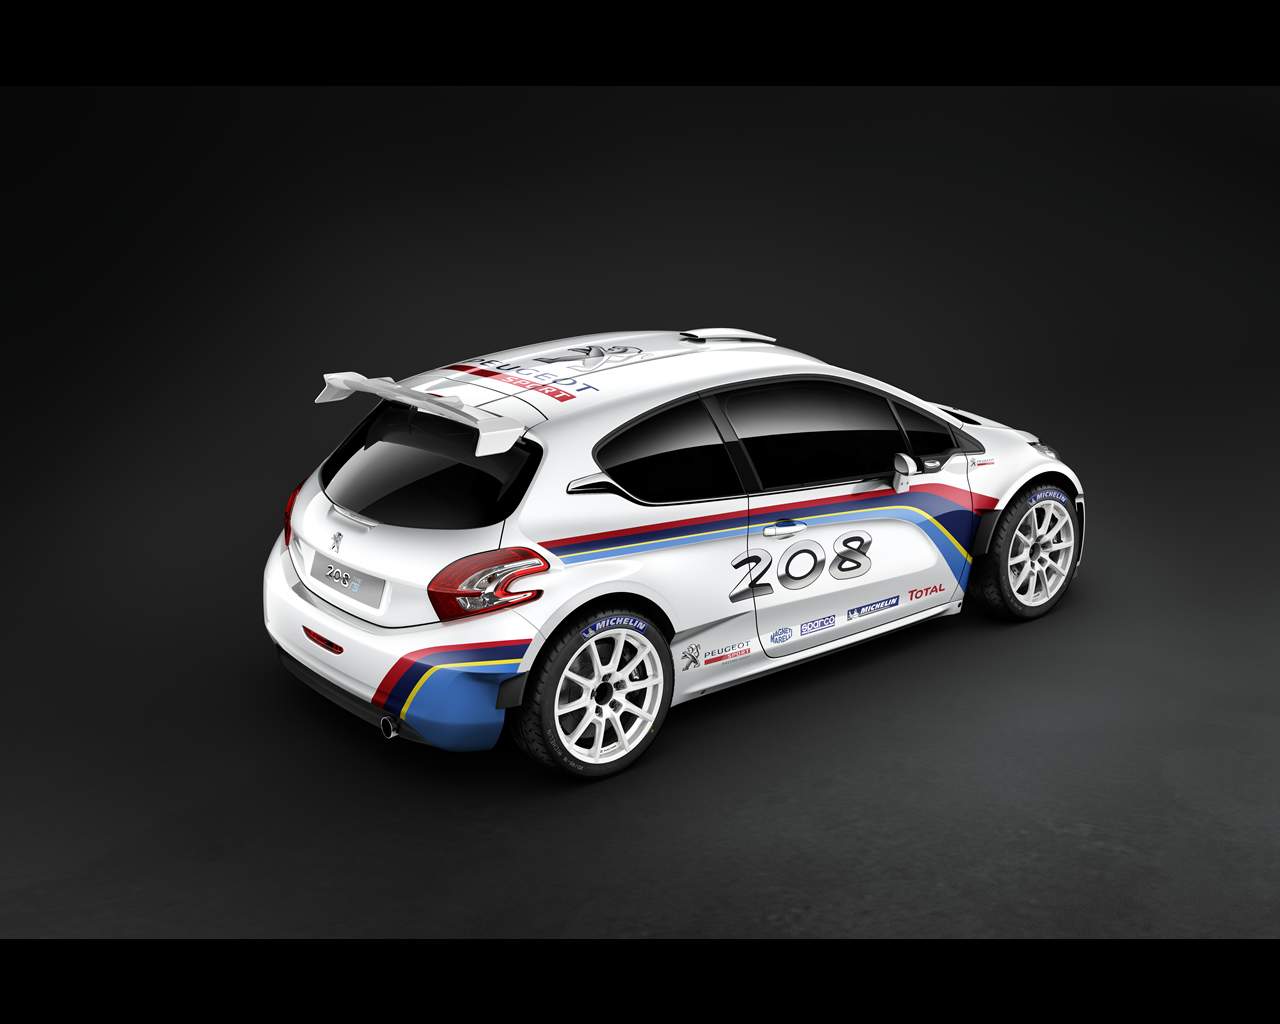 2018 Peugeot 208 R5 Rally car photo - 1